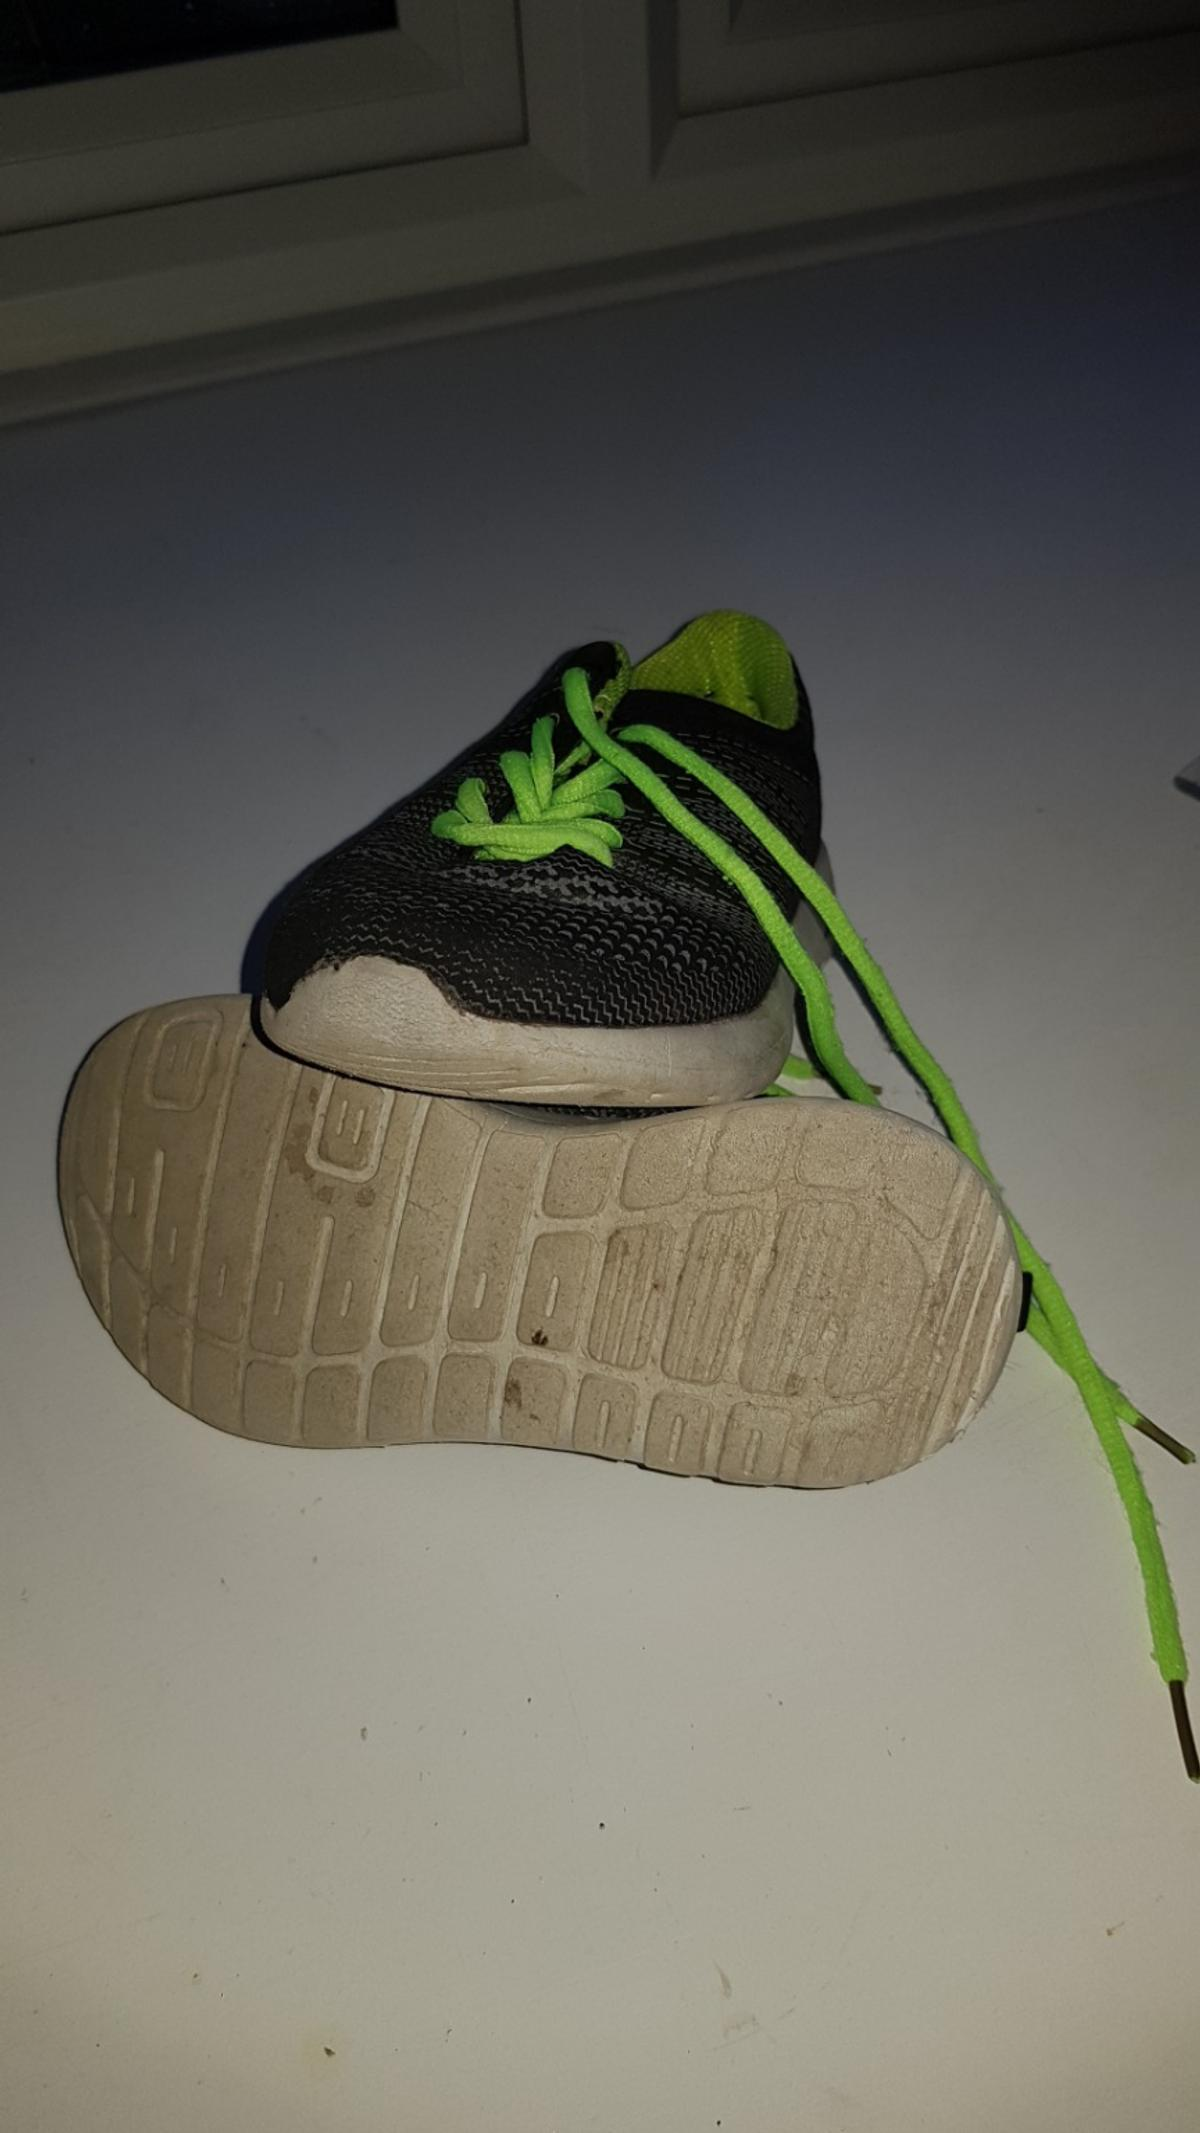 Nutmeg trainers size 11 boy/ girl in vg used condition dark grey/black with bright green laces